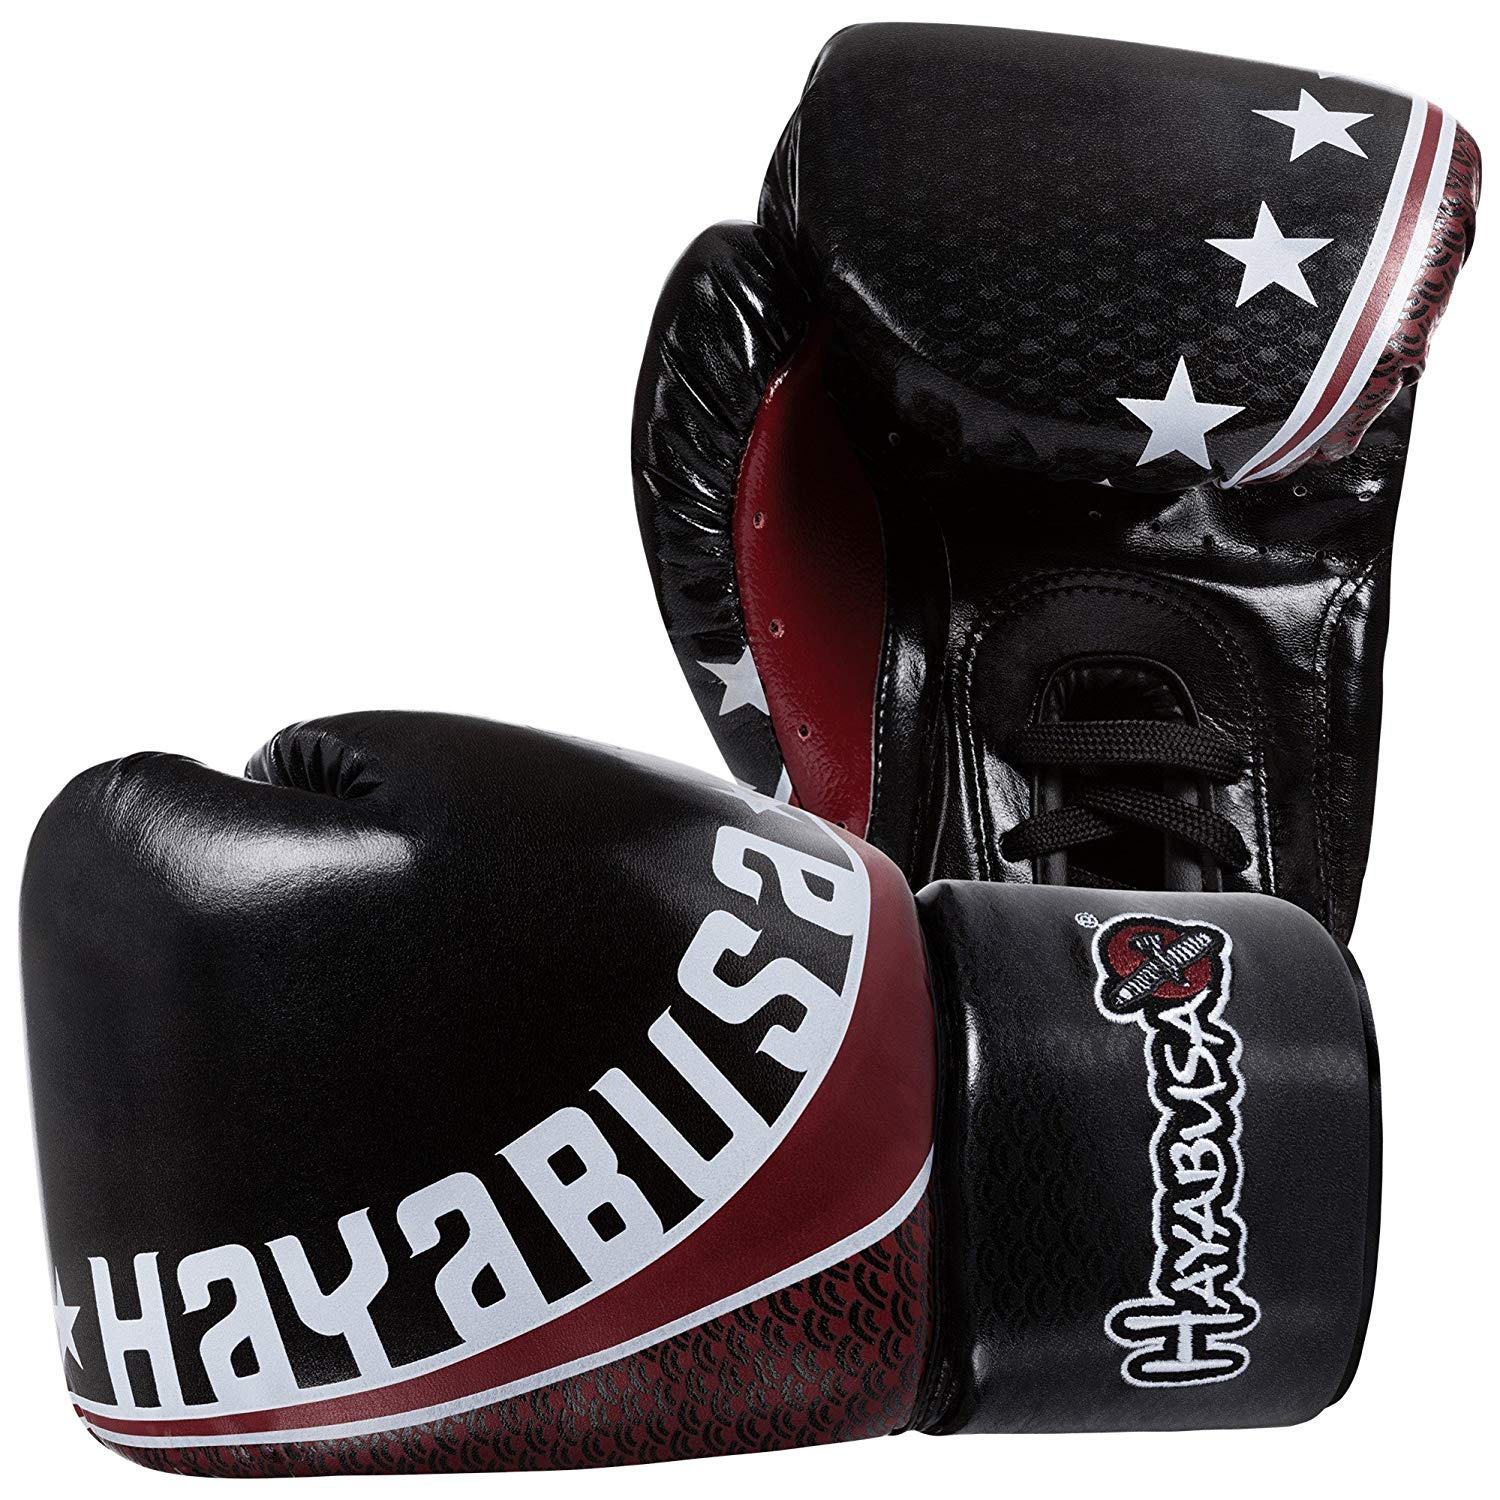 KIDS YOUTH JUNIOR BLACK HAND WRAPPING FOR MUAY THAI SPORTS TRAINING 1.5m